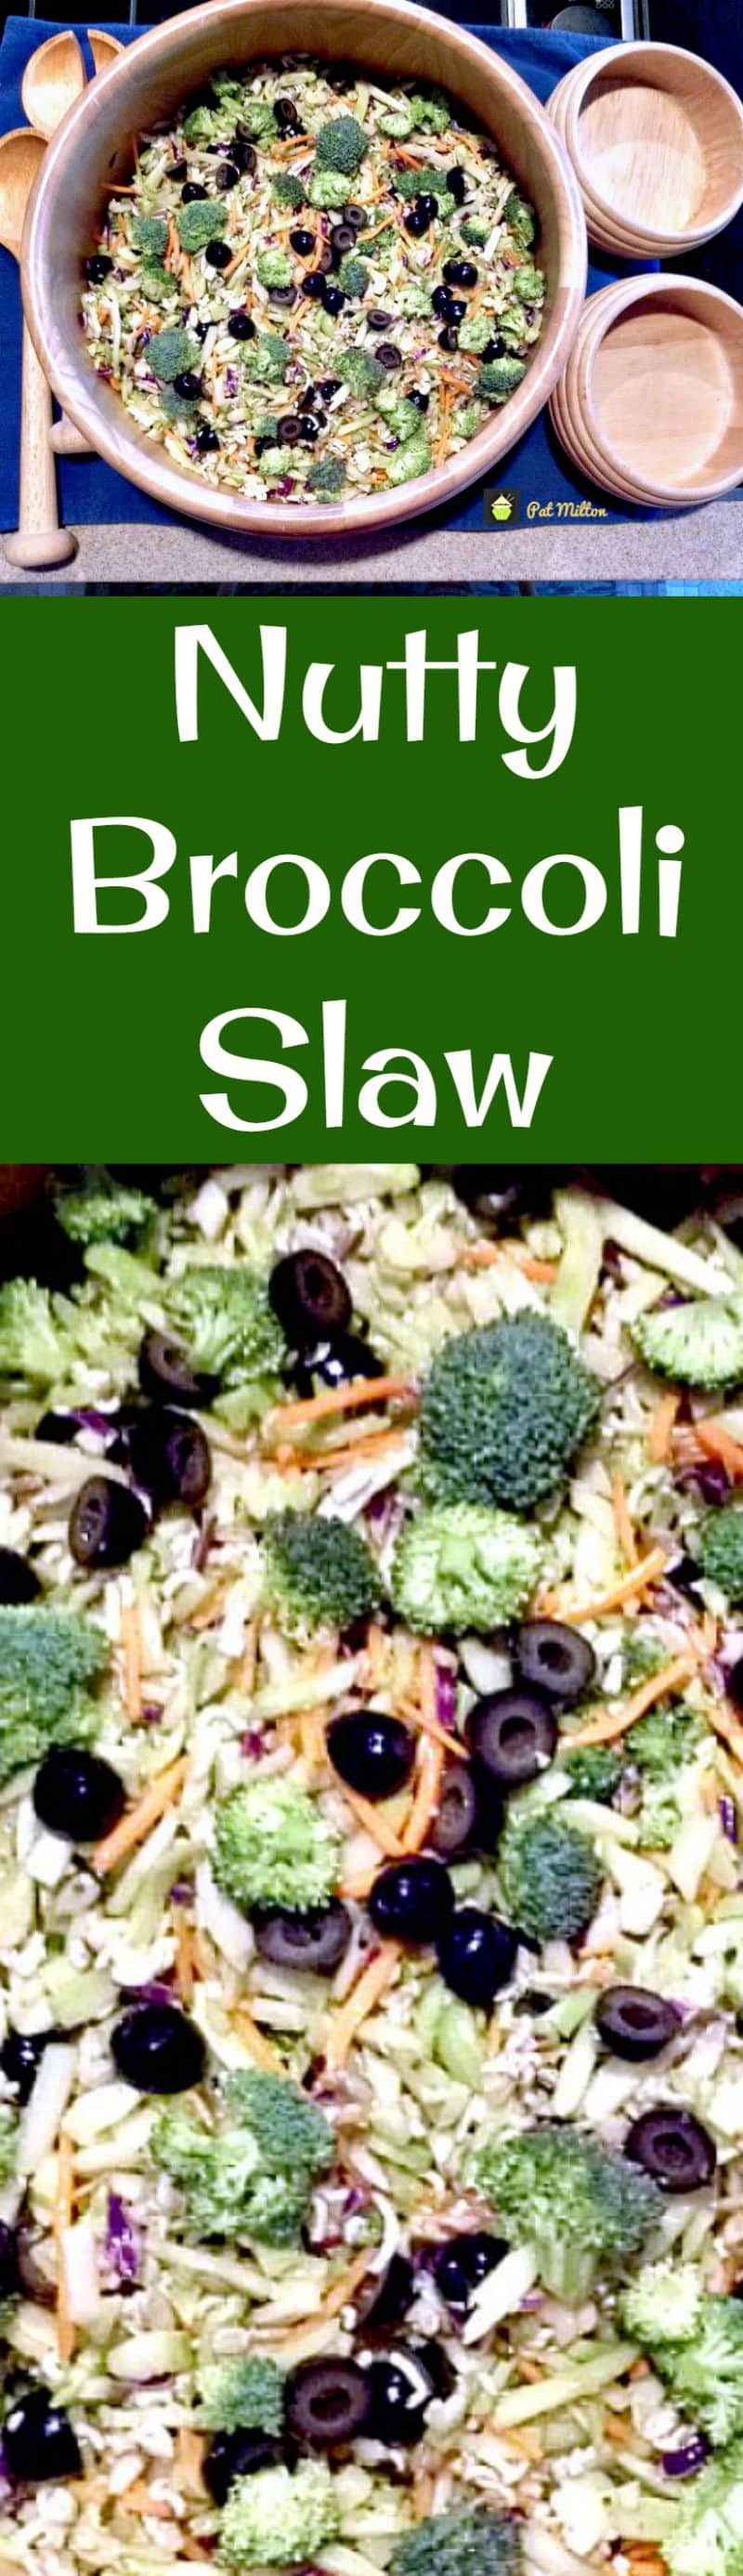 Nutty Broccoli Slaw. A quick and simple salad with broccoli, ramen noodles and other goodies and a yummy dressing to match!